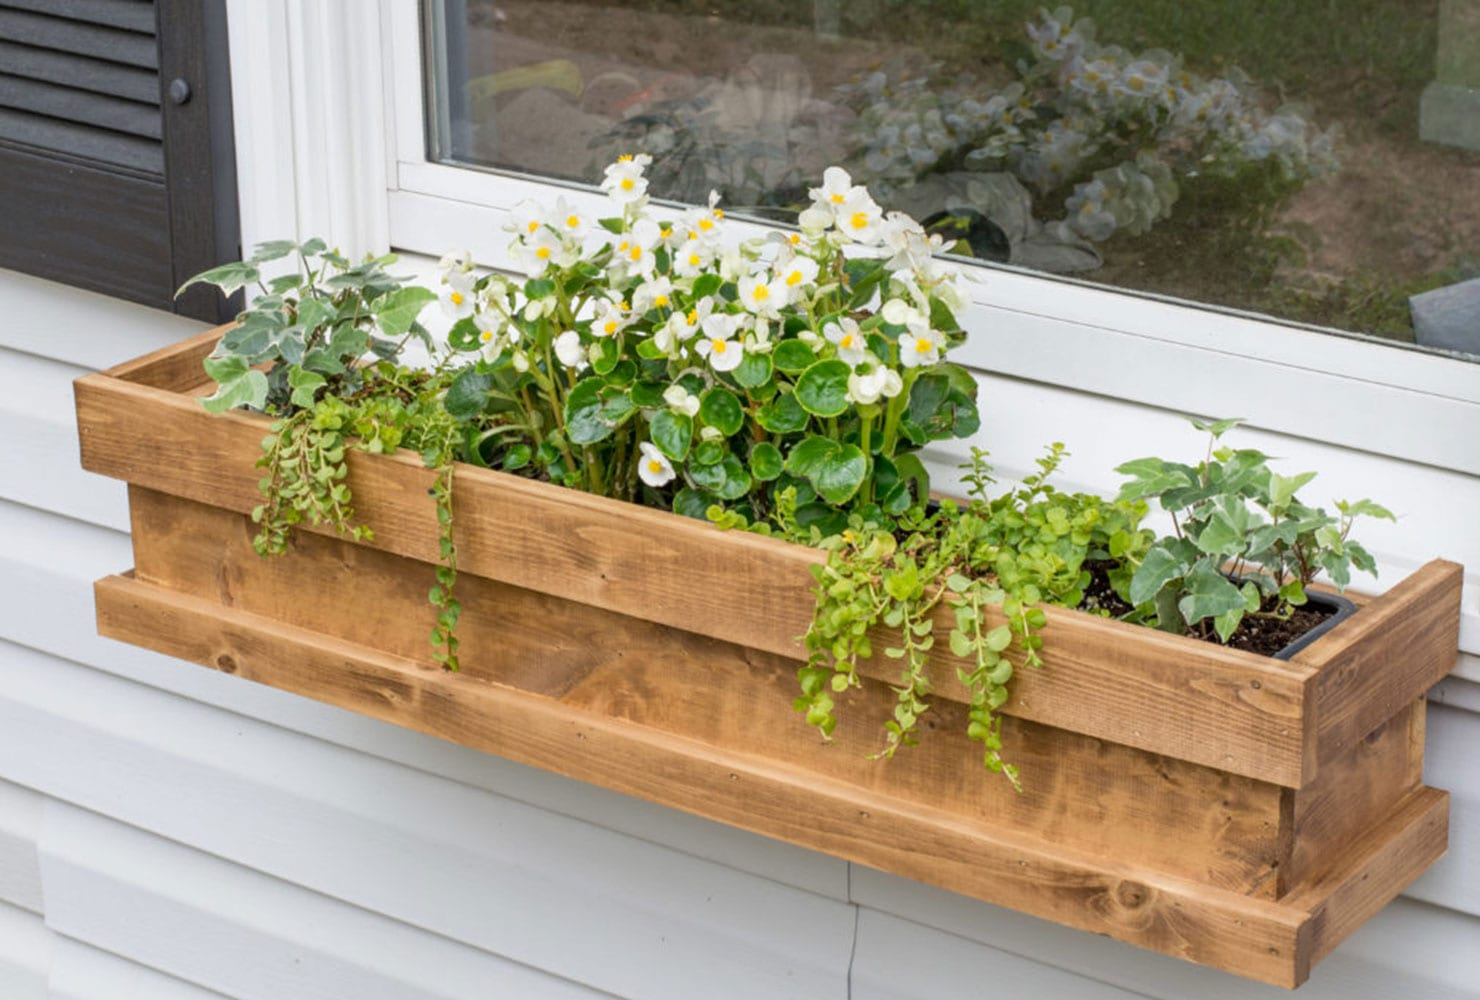 Diy Deck Flower Boxes 45 43 Diy Patio Ideas To Brighten Your Space Shutterfly